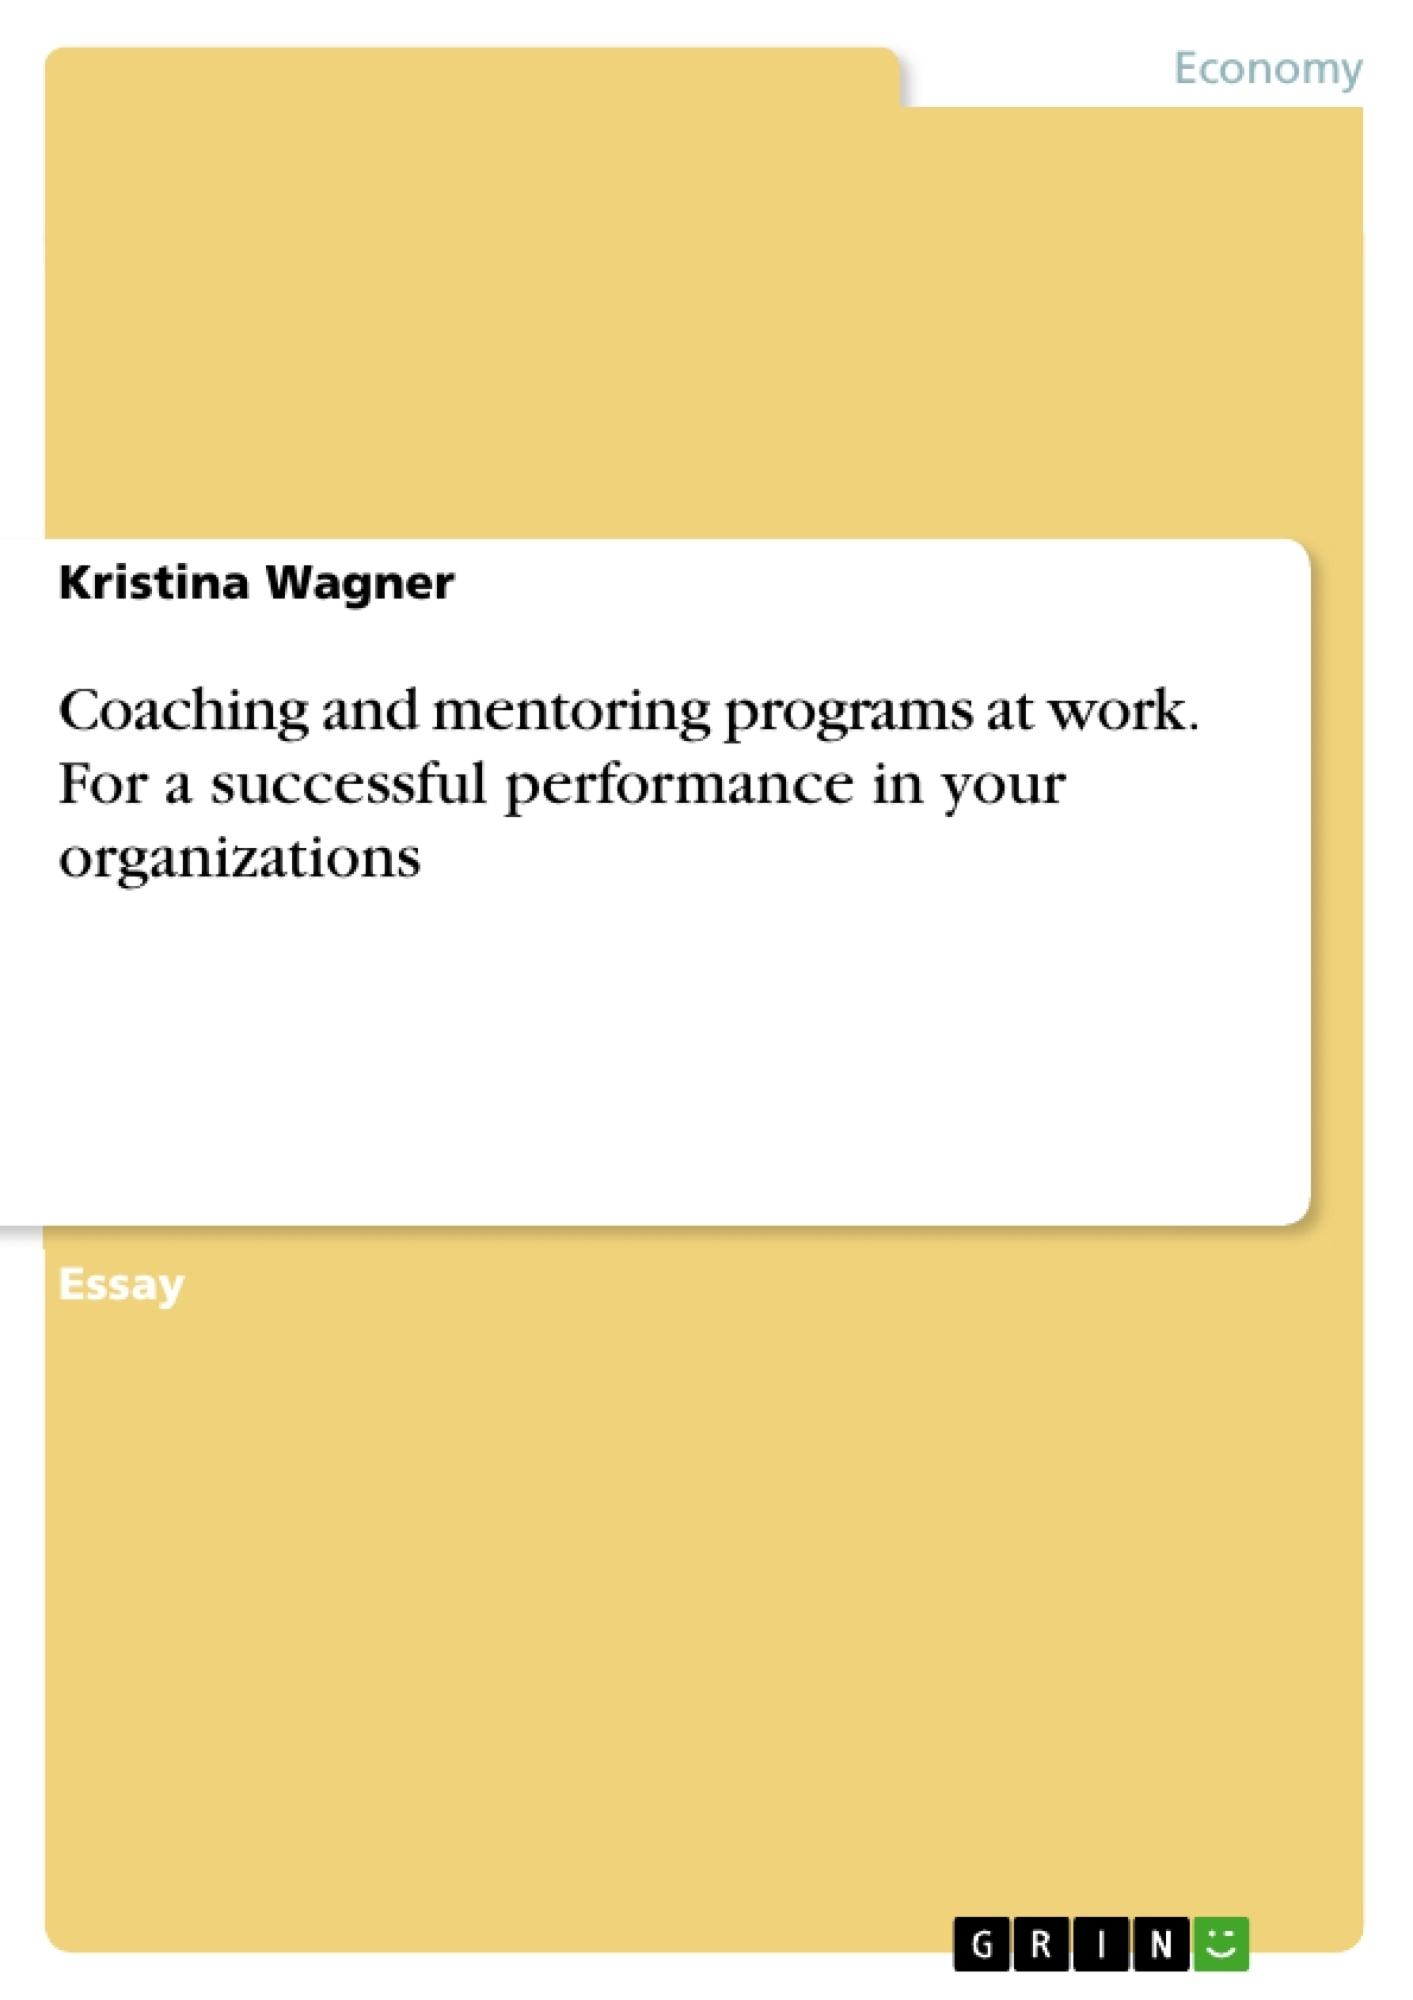 Title: Coaching and mentoring programs at work. For a successful performance in your organizations